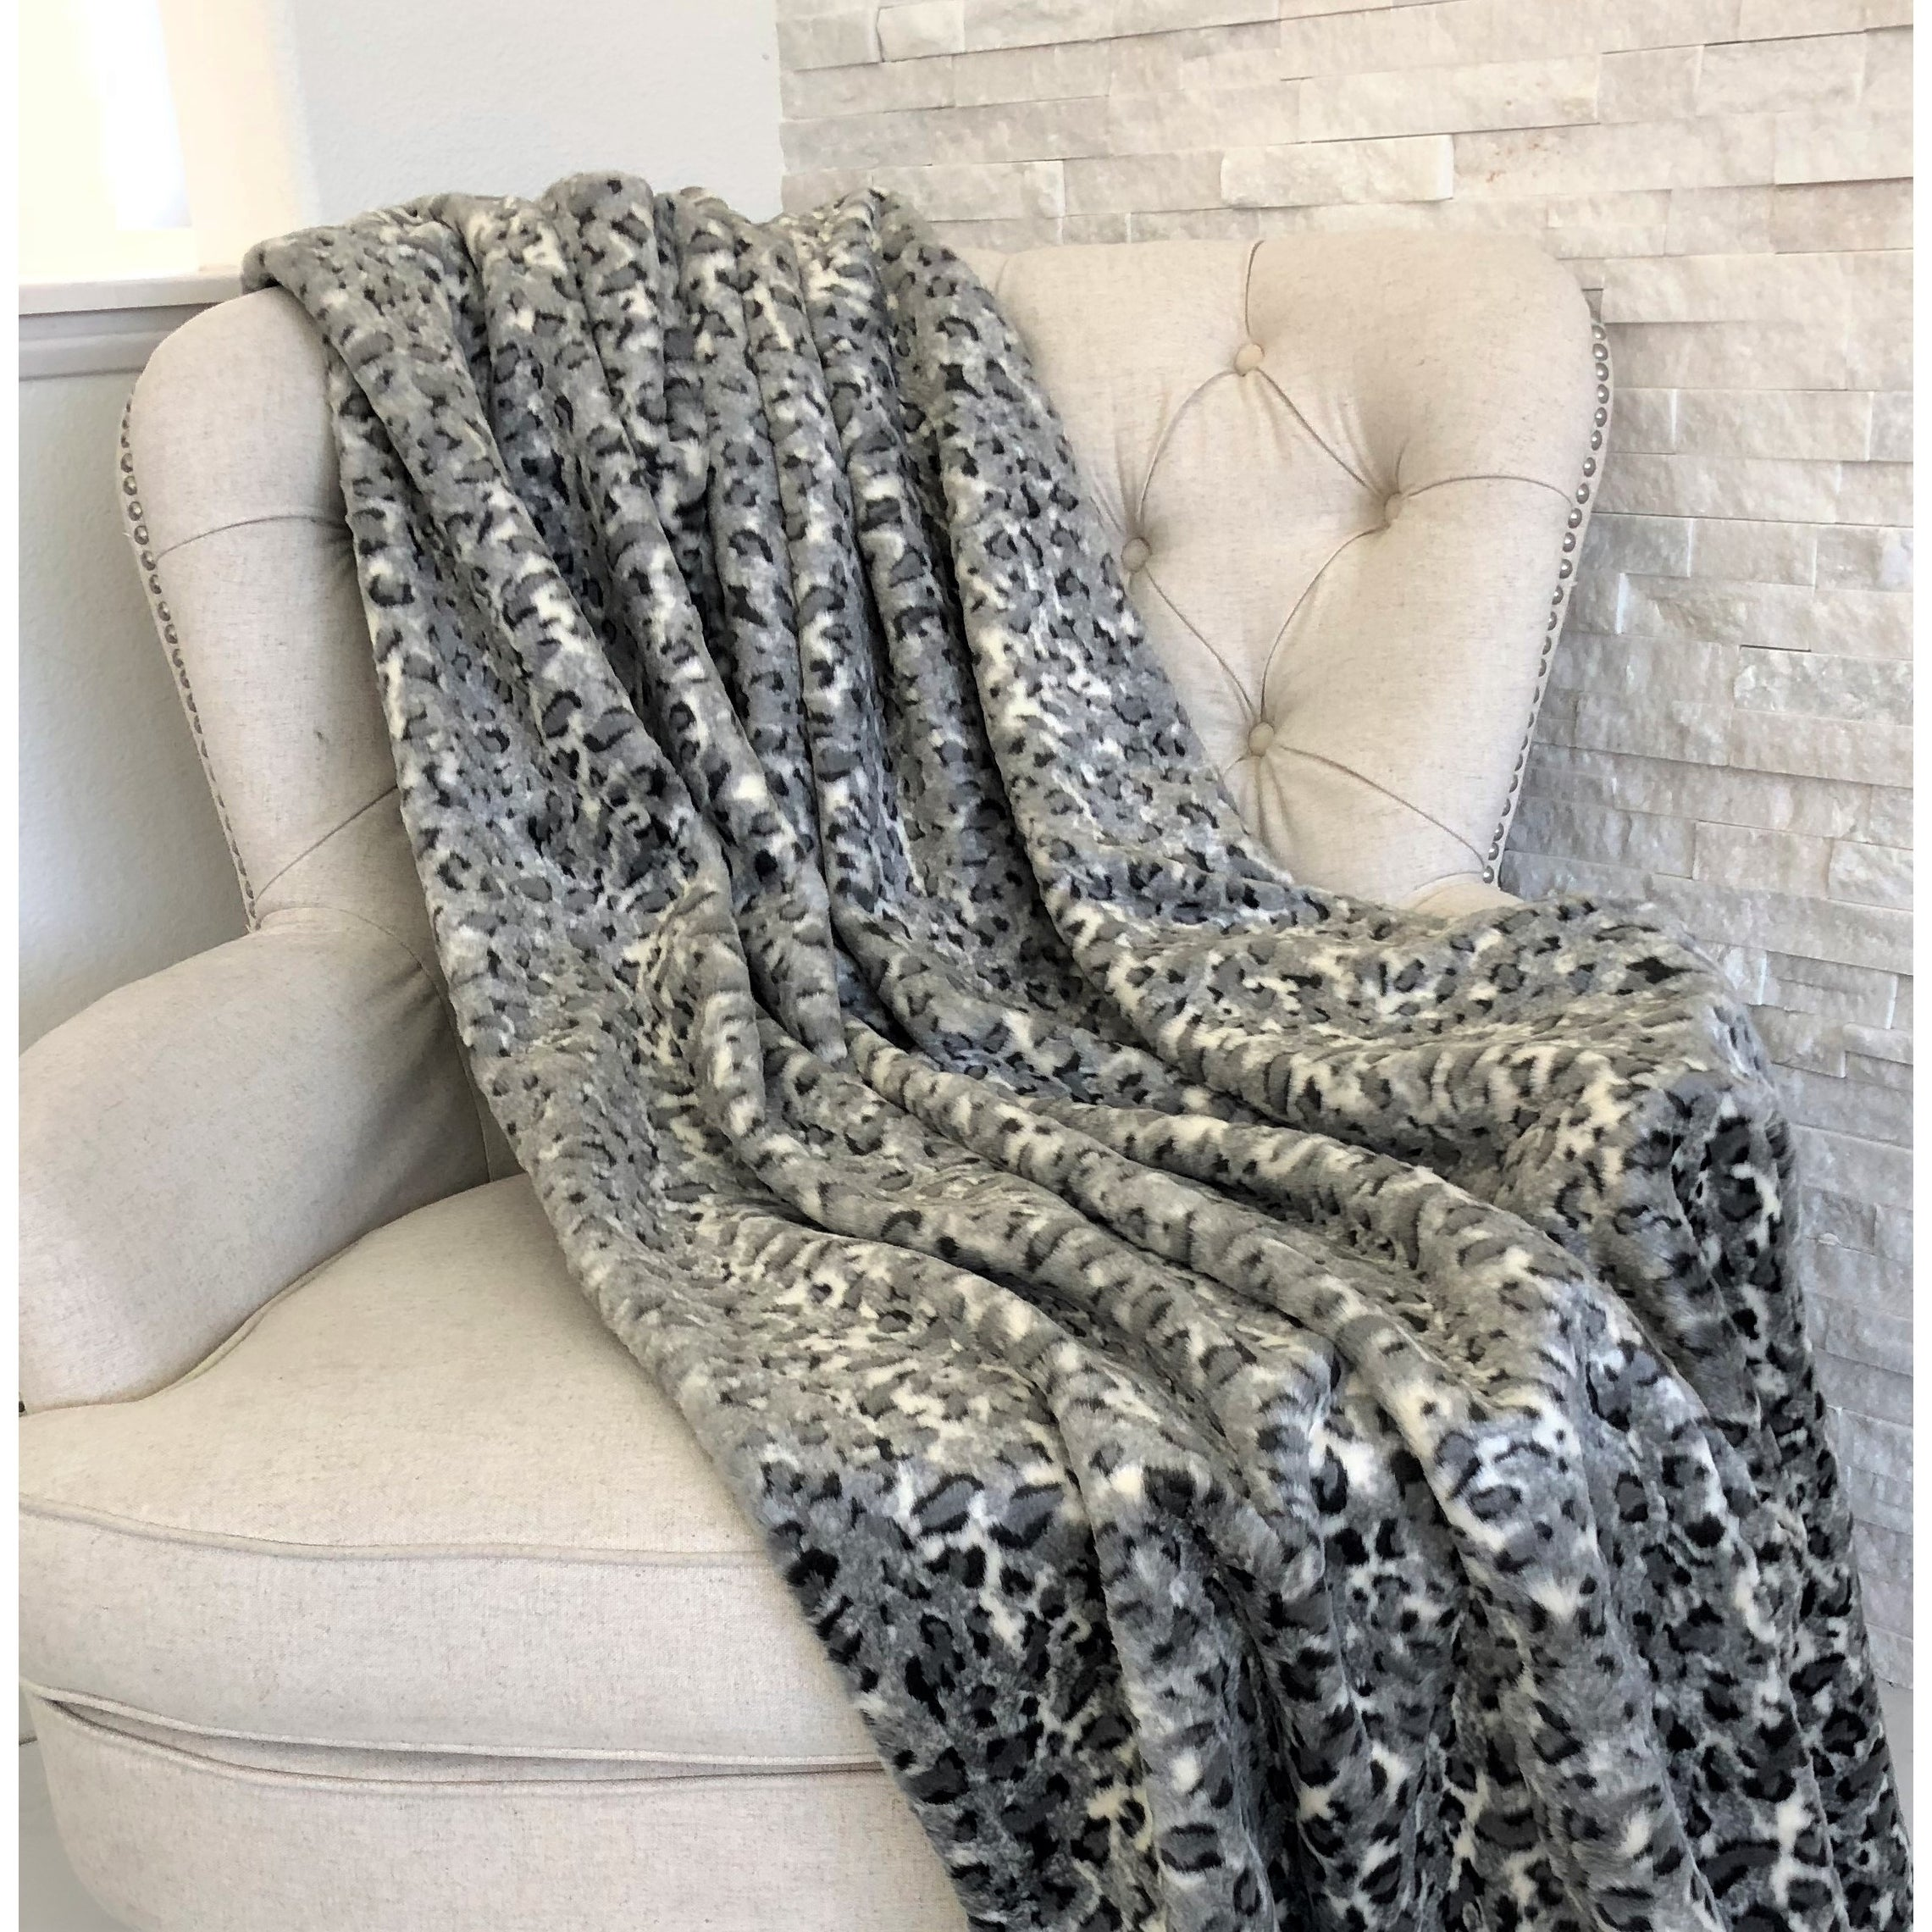 The velvet jungle throw with high-end faux fur